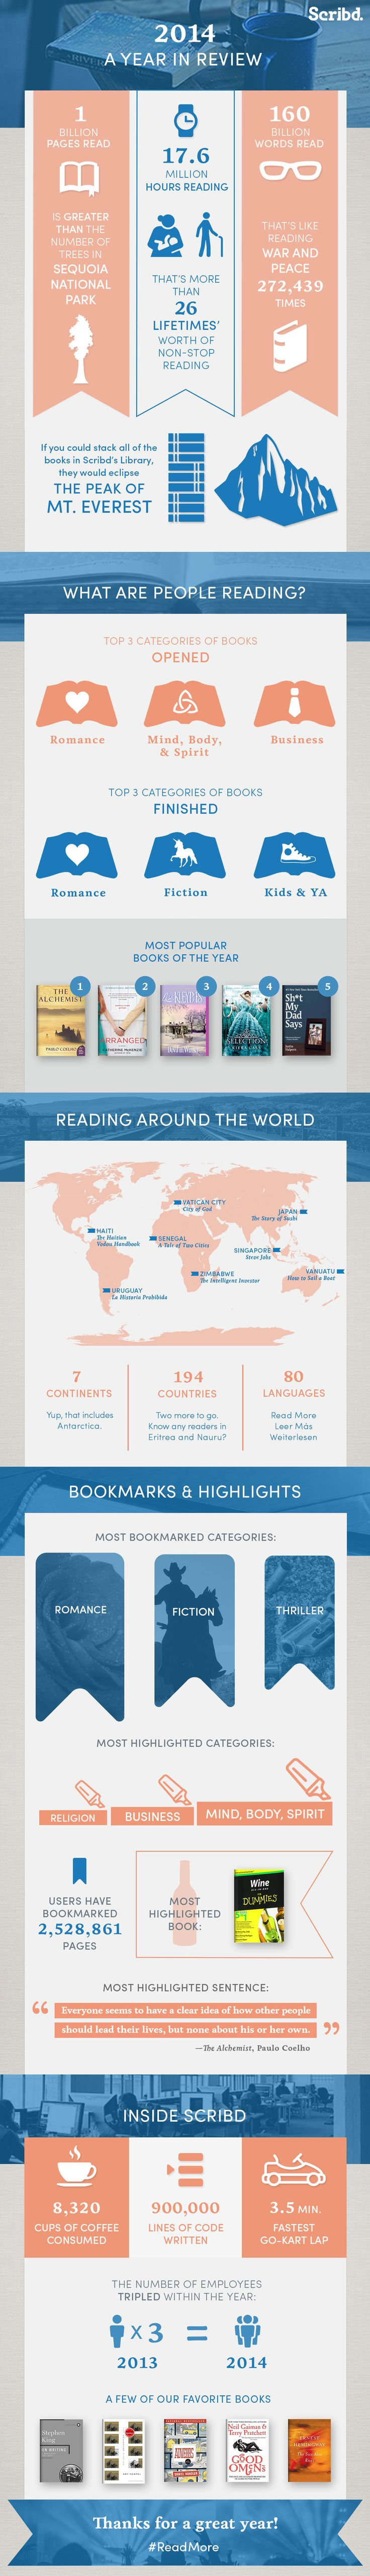 A Year in Reading Data from Scribd : Page 1 of 1 : Book Business